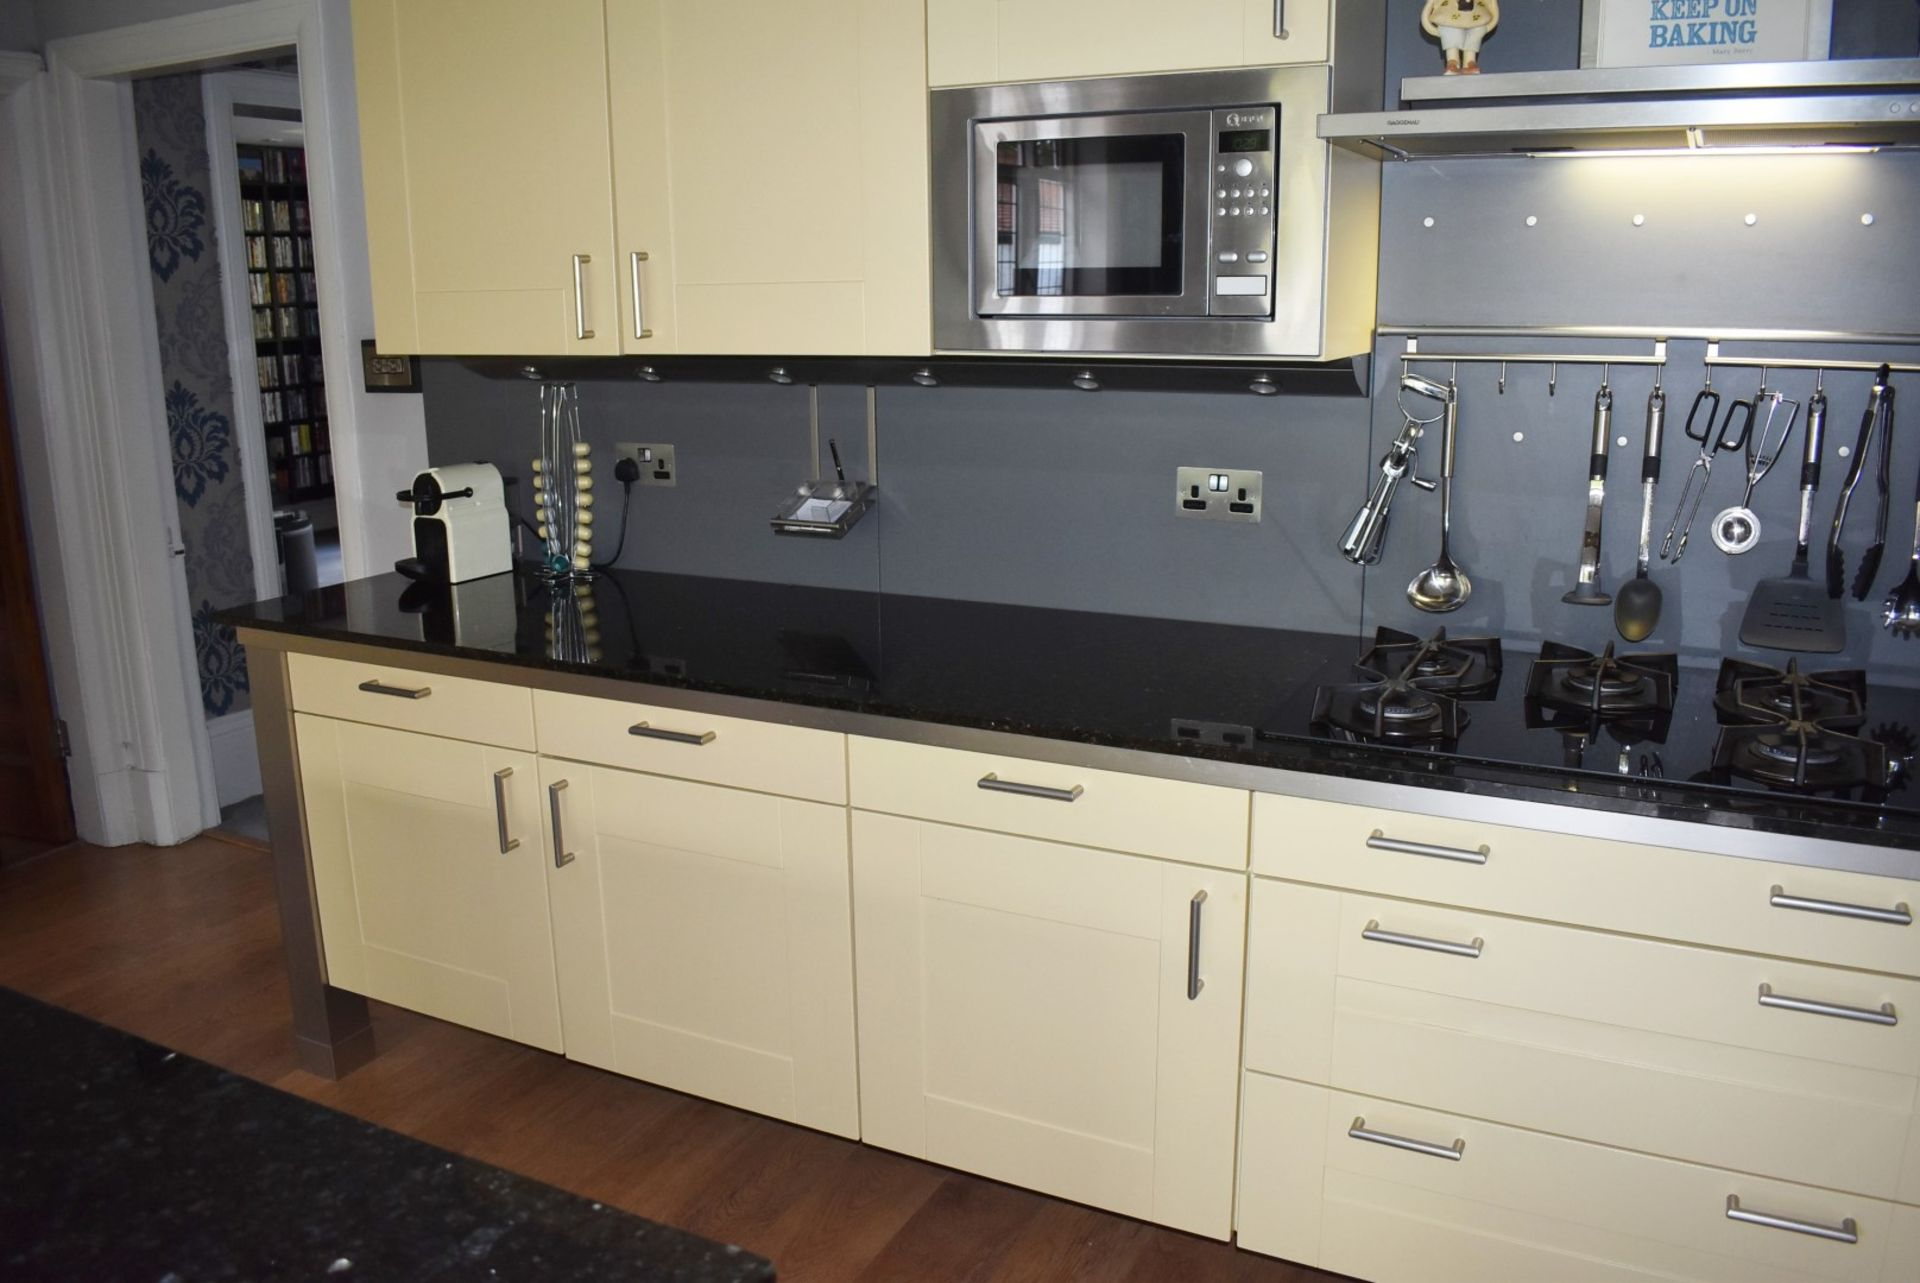 1 x SieMatic Contemporary Fitted Kitchen With Appliances - Features Shaker Style Doors, Central - Image 48 of 96